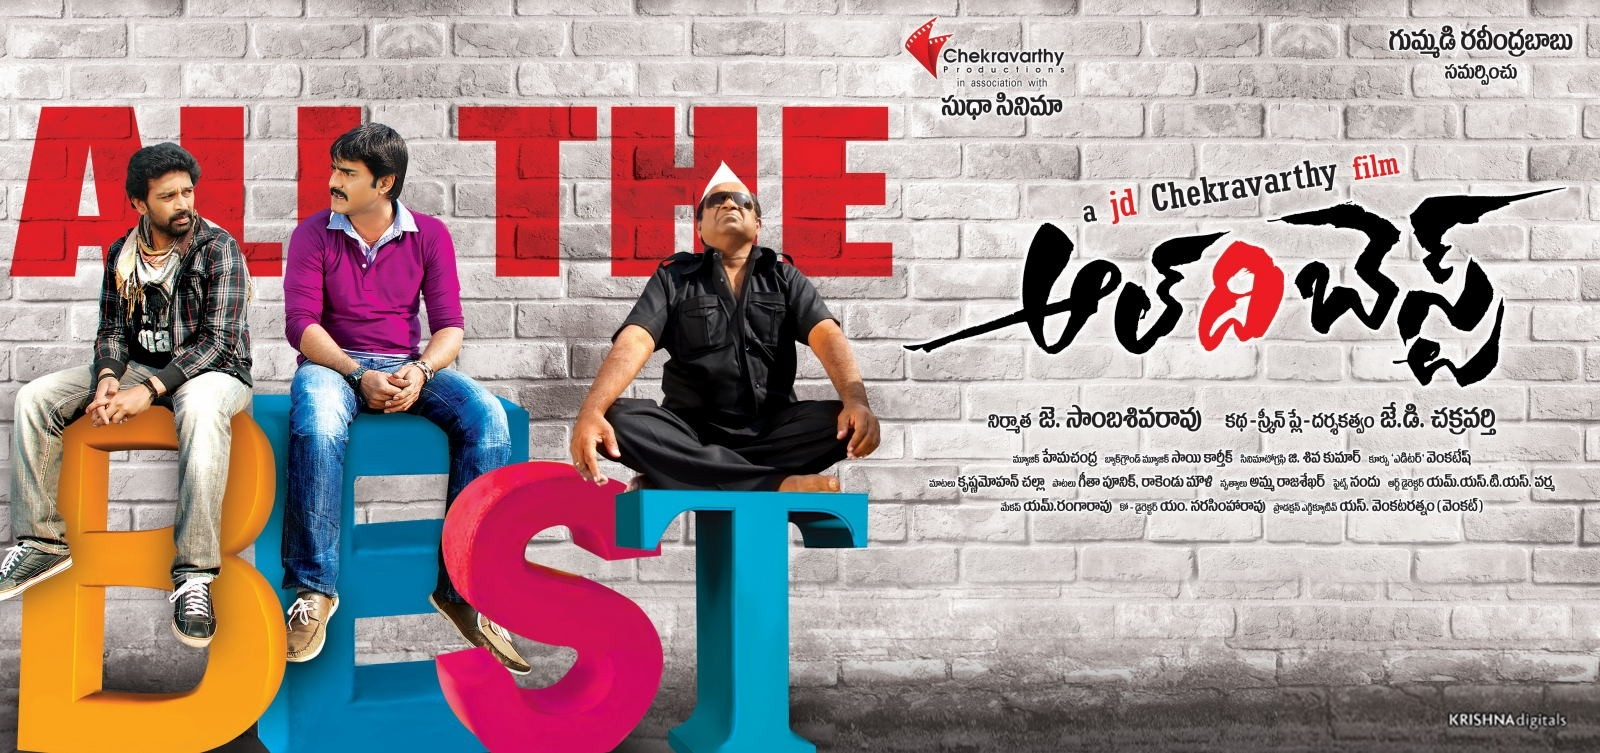 All the best movie wallpapers mastimusiq for All the very best images